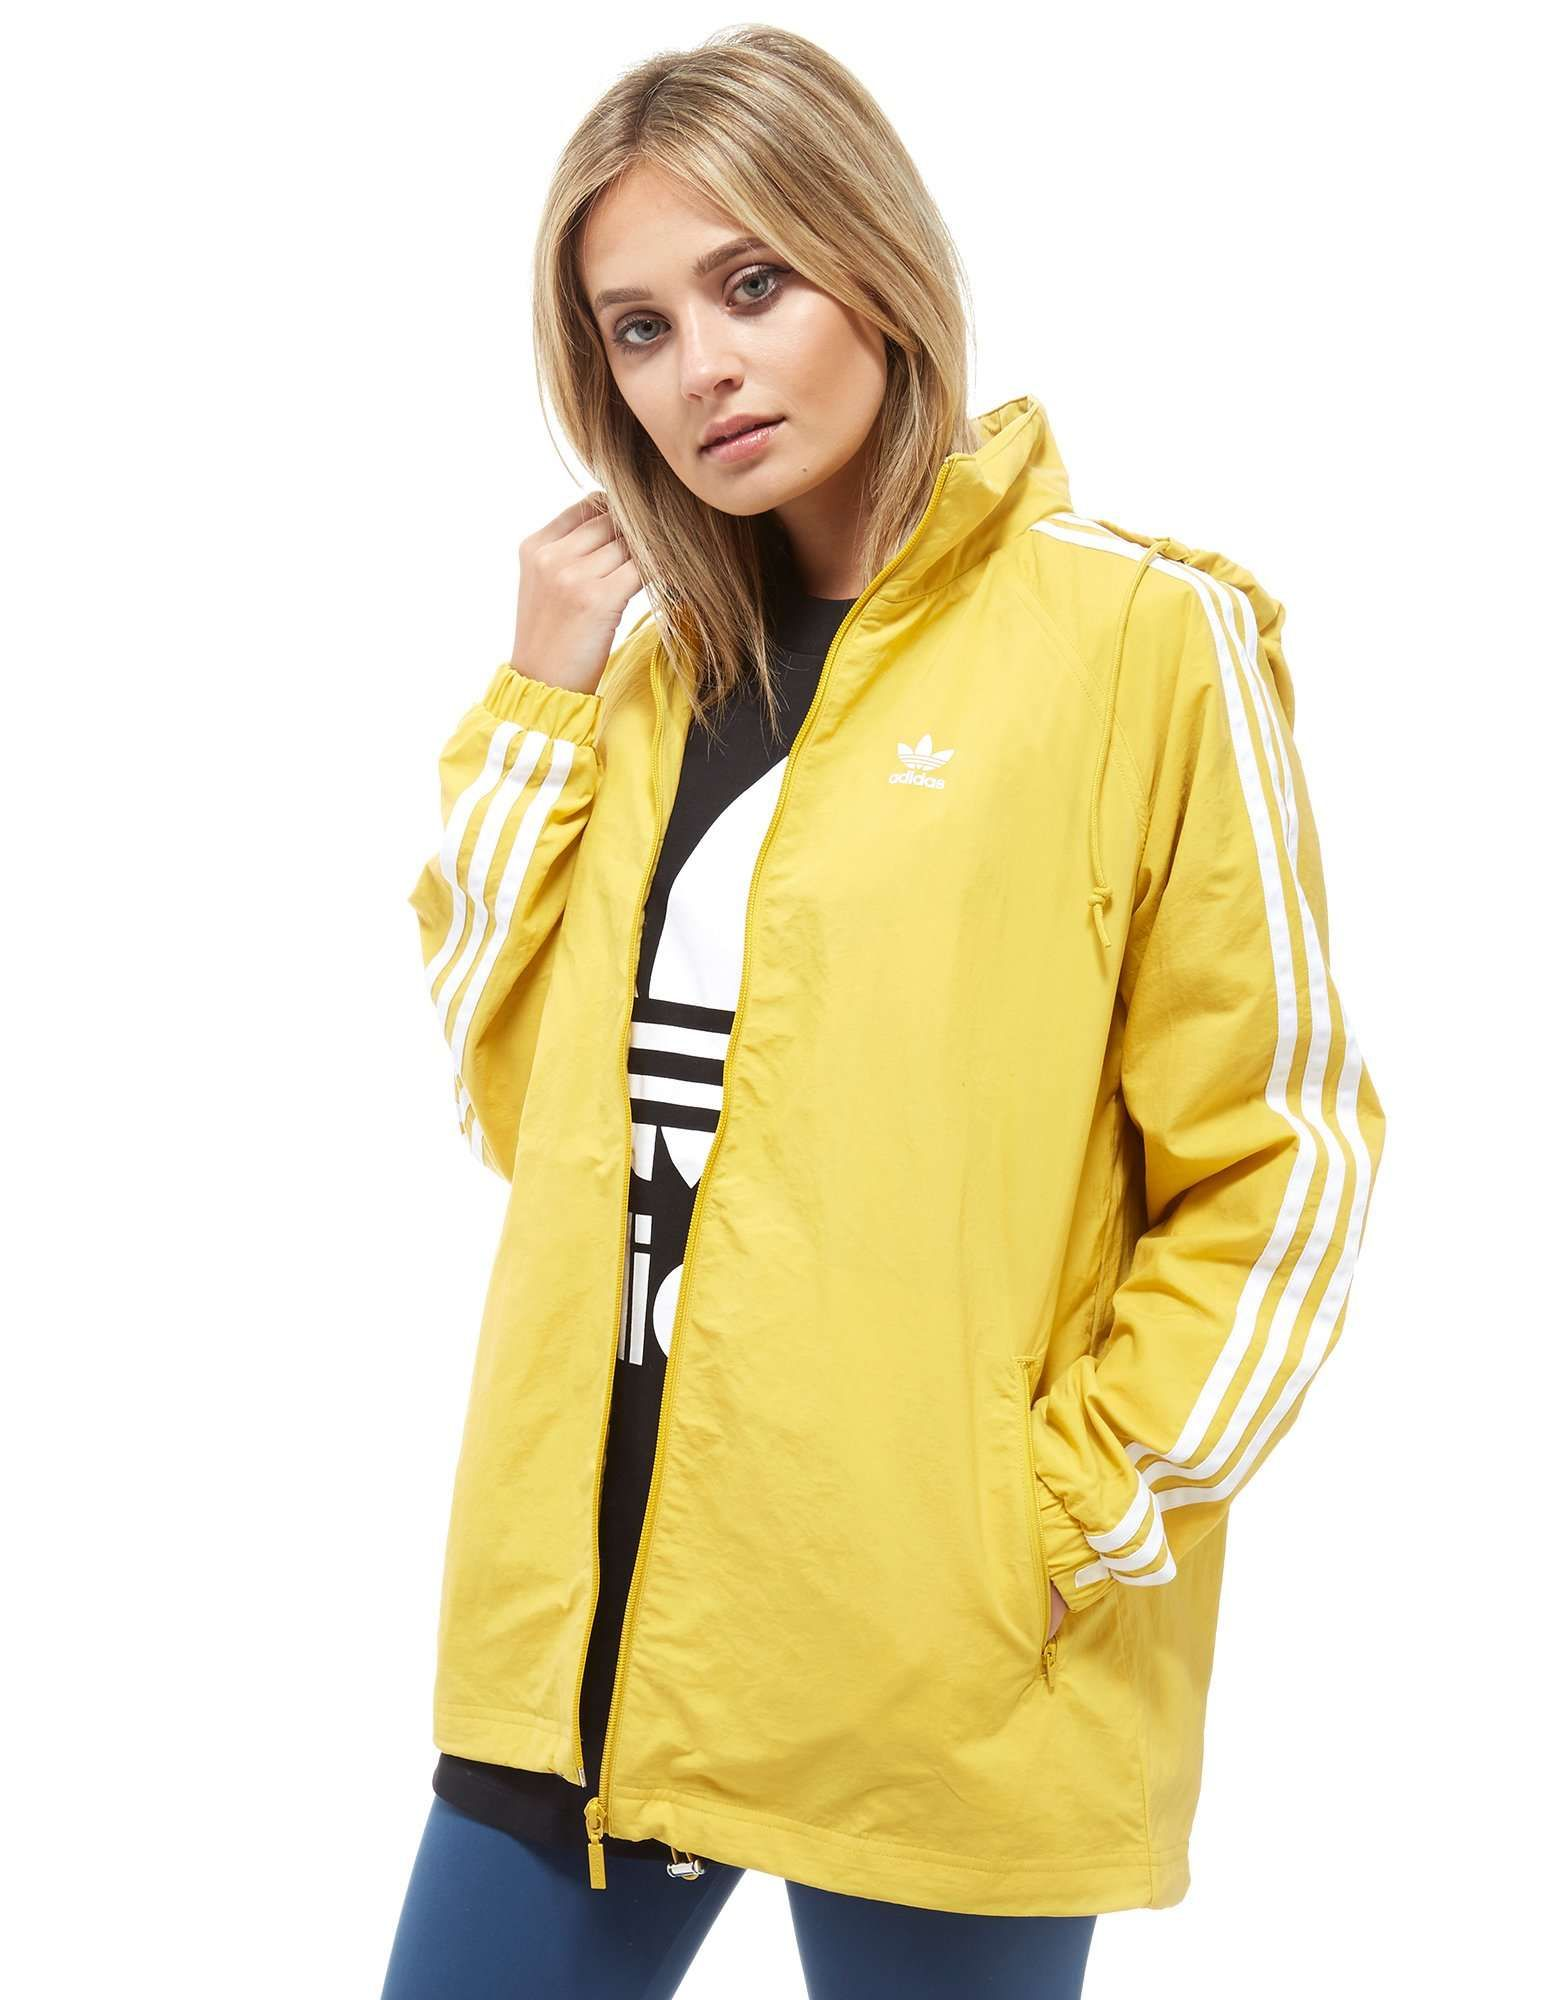 adidas Originals Stadium Jacket Shop online for adidas